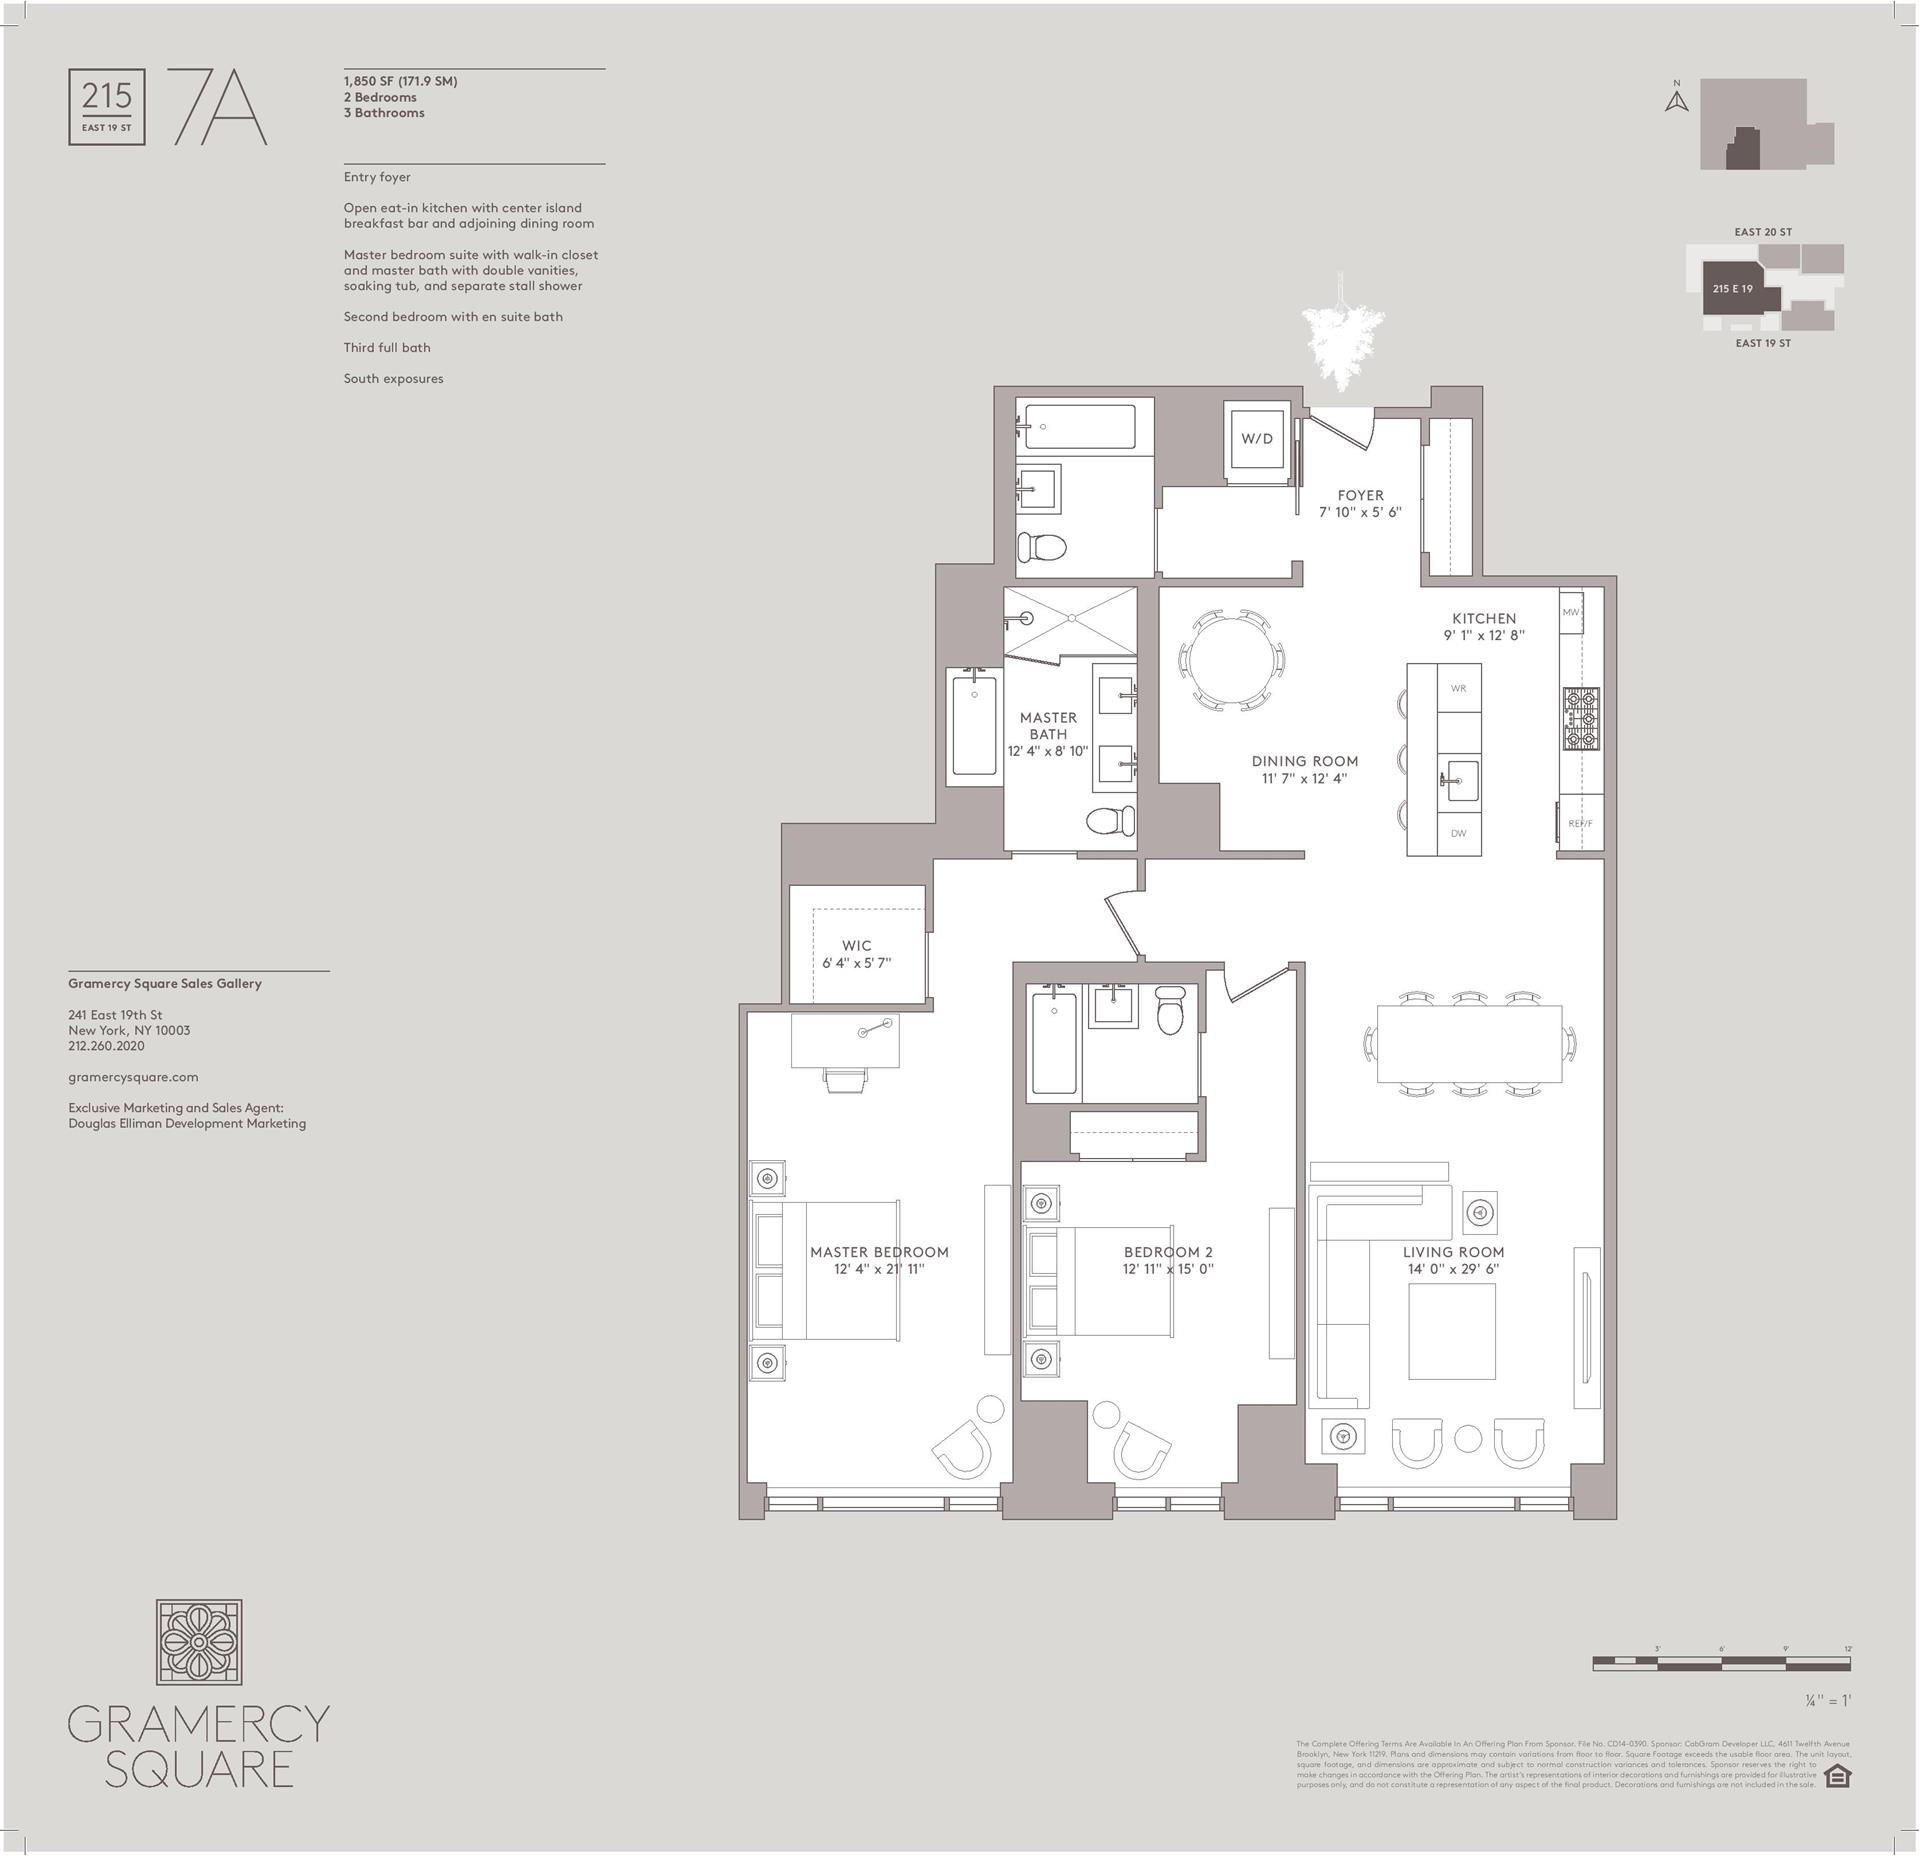 Floor plan of Gramercy Square, 215 East 19th Street, 7A - Gramercy - Union Square, New York